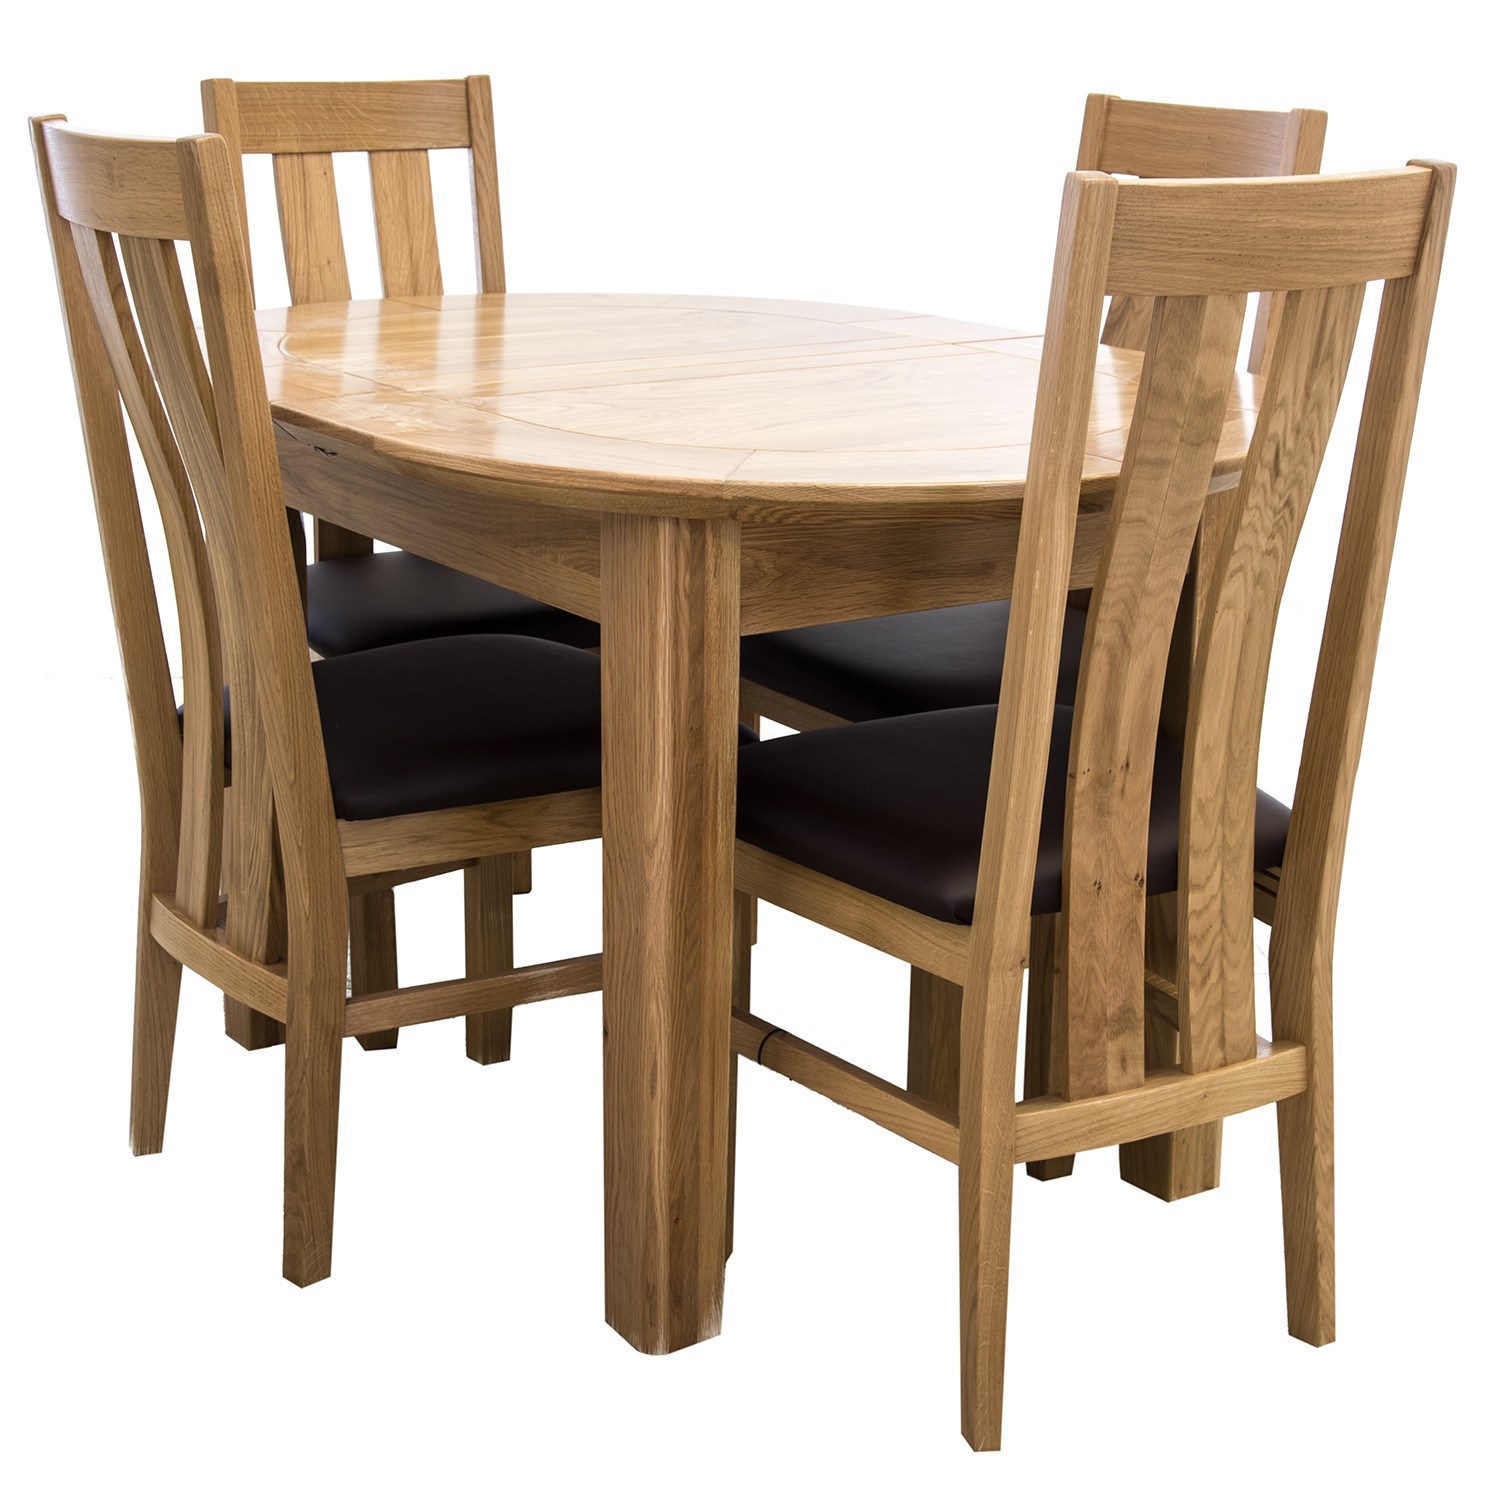 Small Dining Sets For 4: Toulouse Small D-End Dining Table & Four Chairs Dining Set